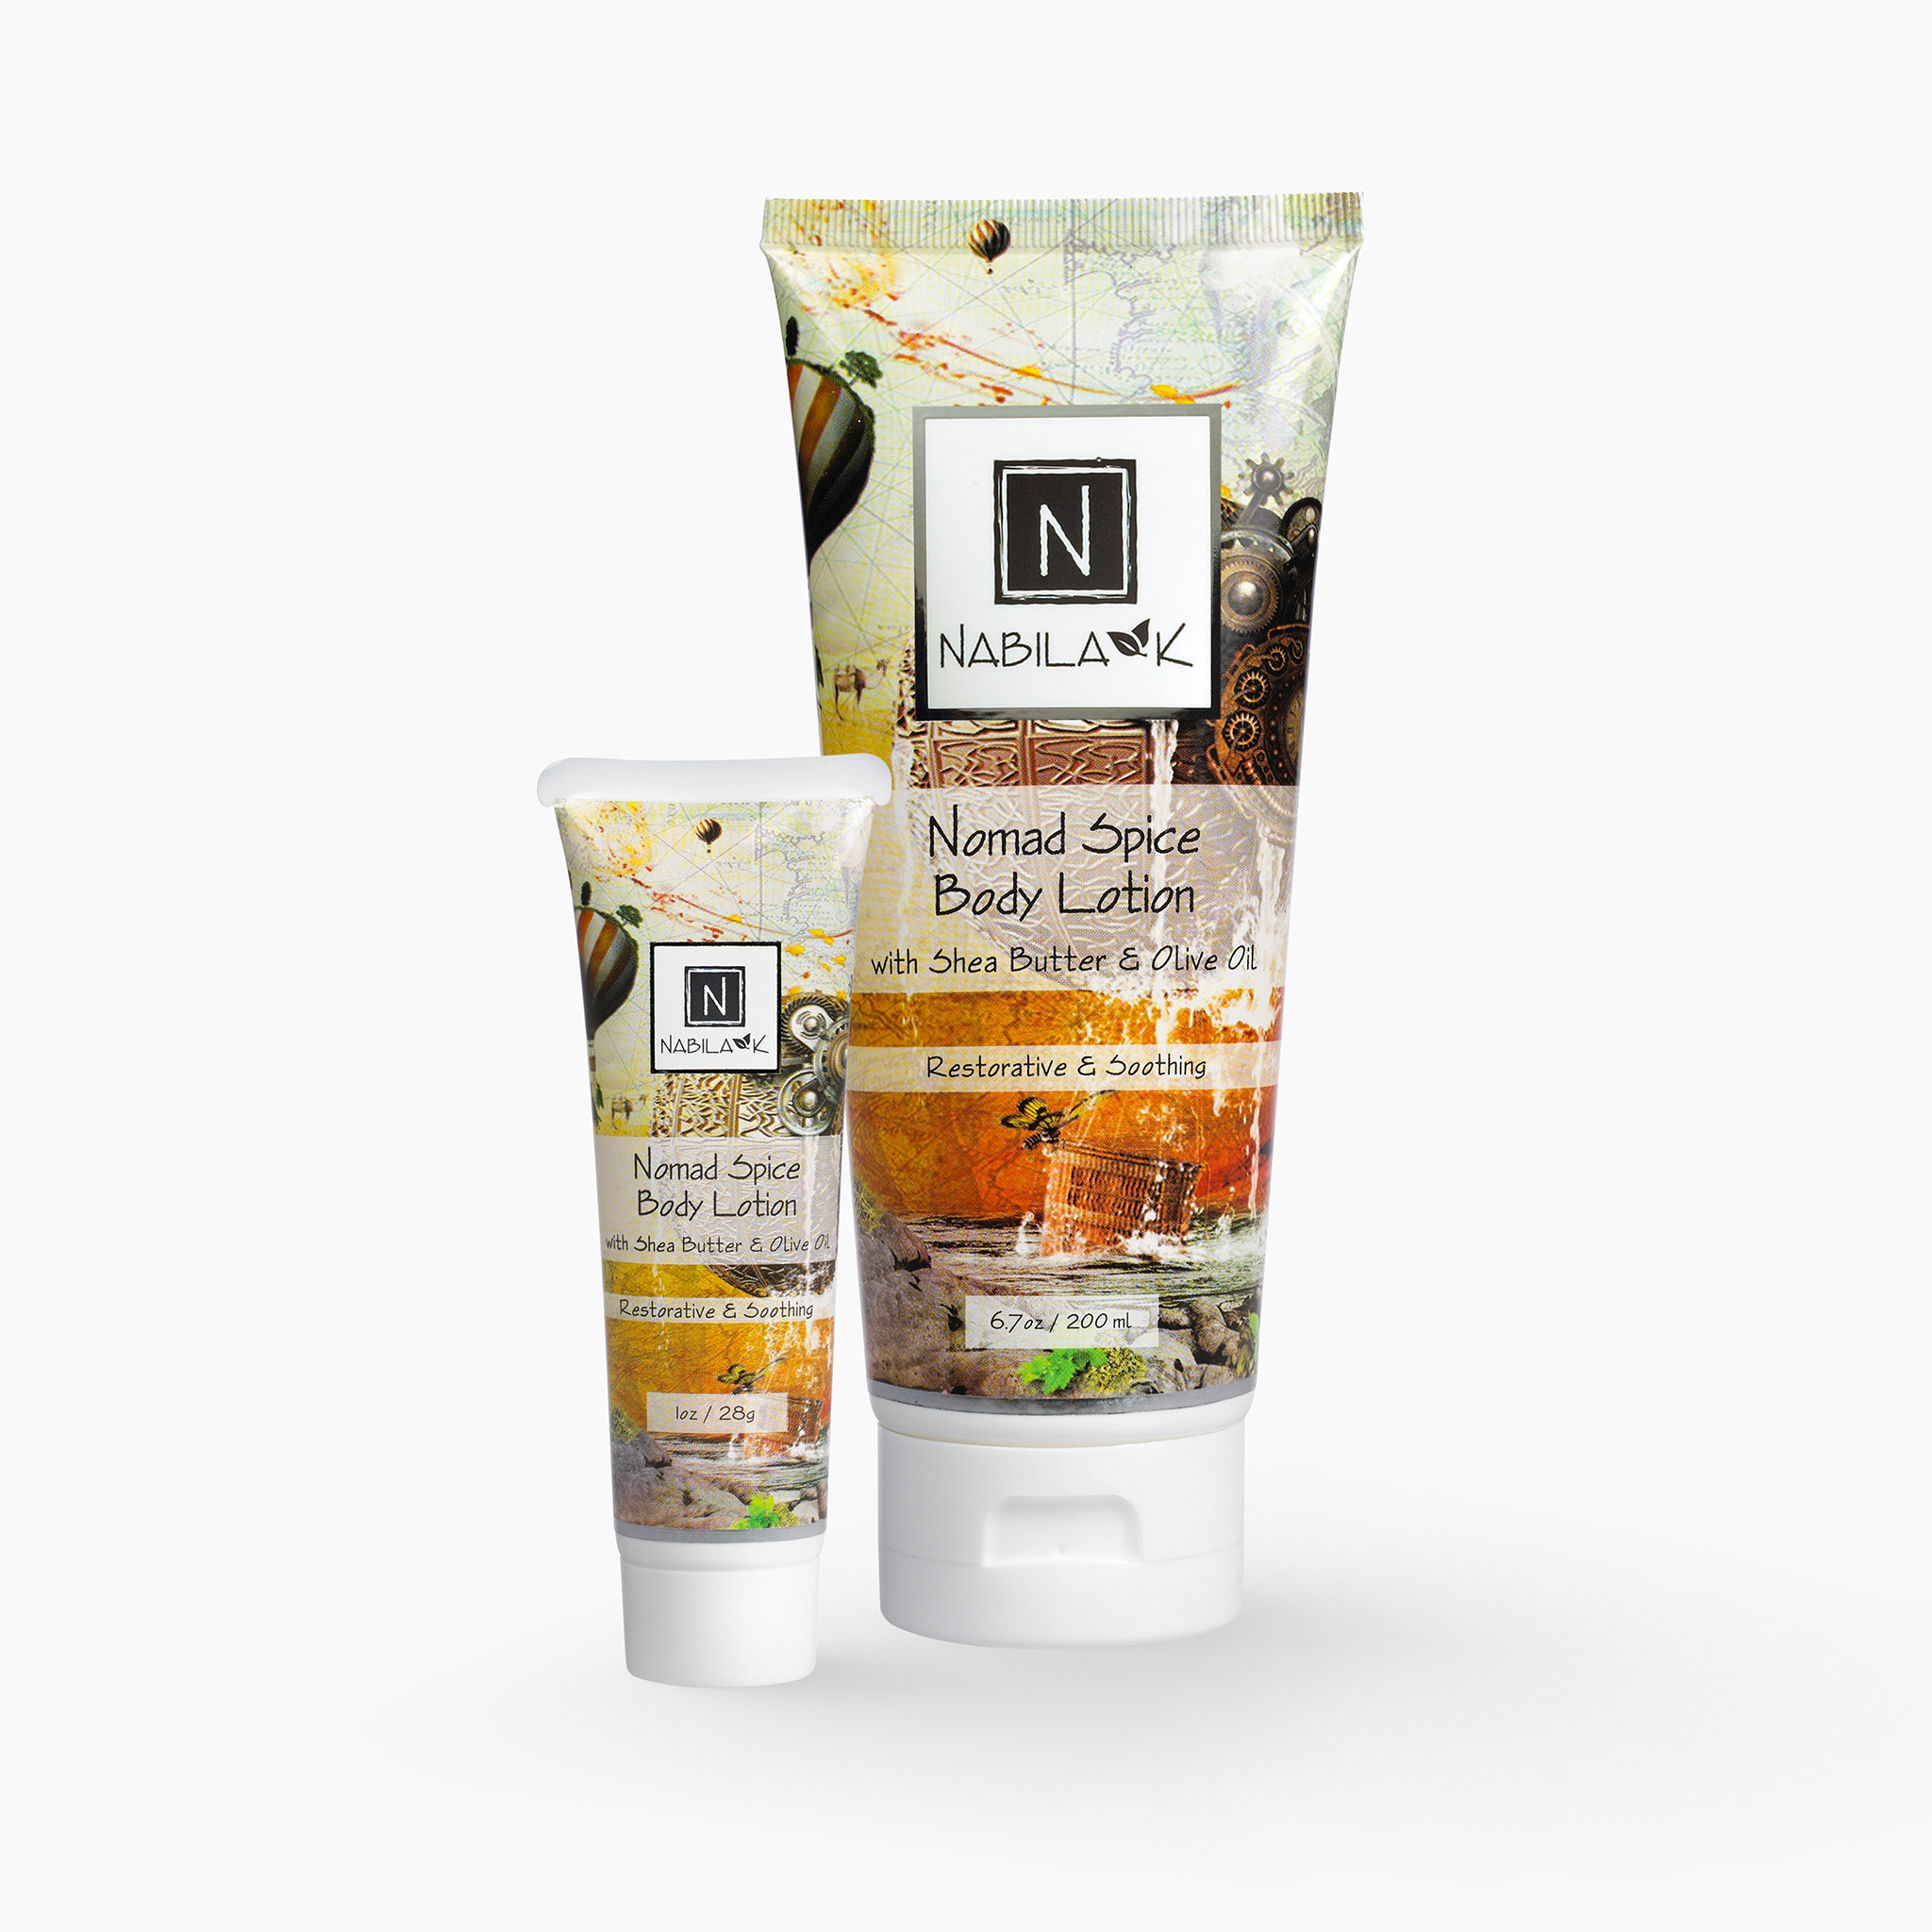 Set of 1 6.7 oz and 1 oz of Nabila K's Nomad Spice Body Lotion with Shea Butter and Olive Oil Restorative and Soothing in a plastic bottle